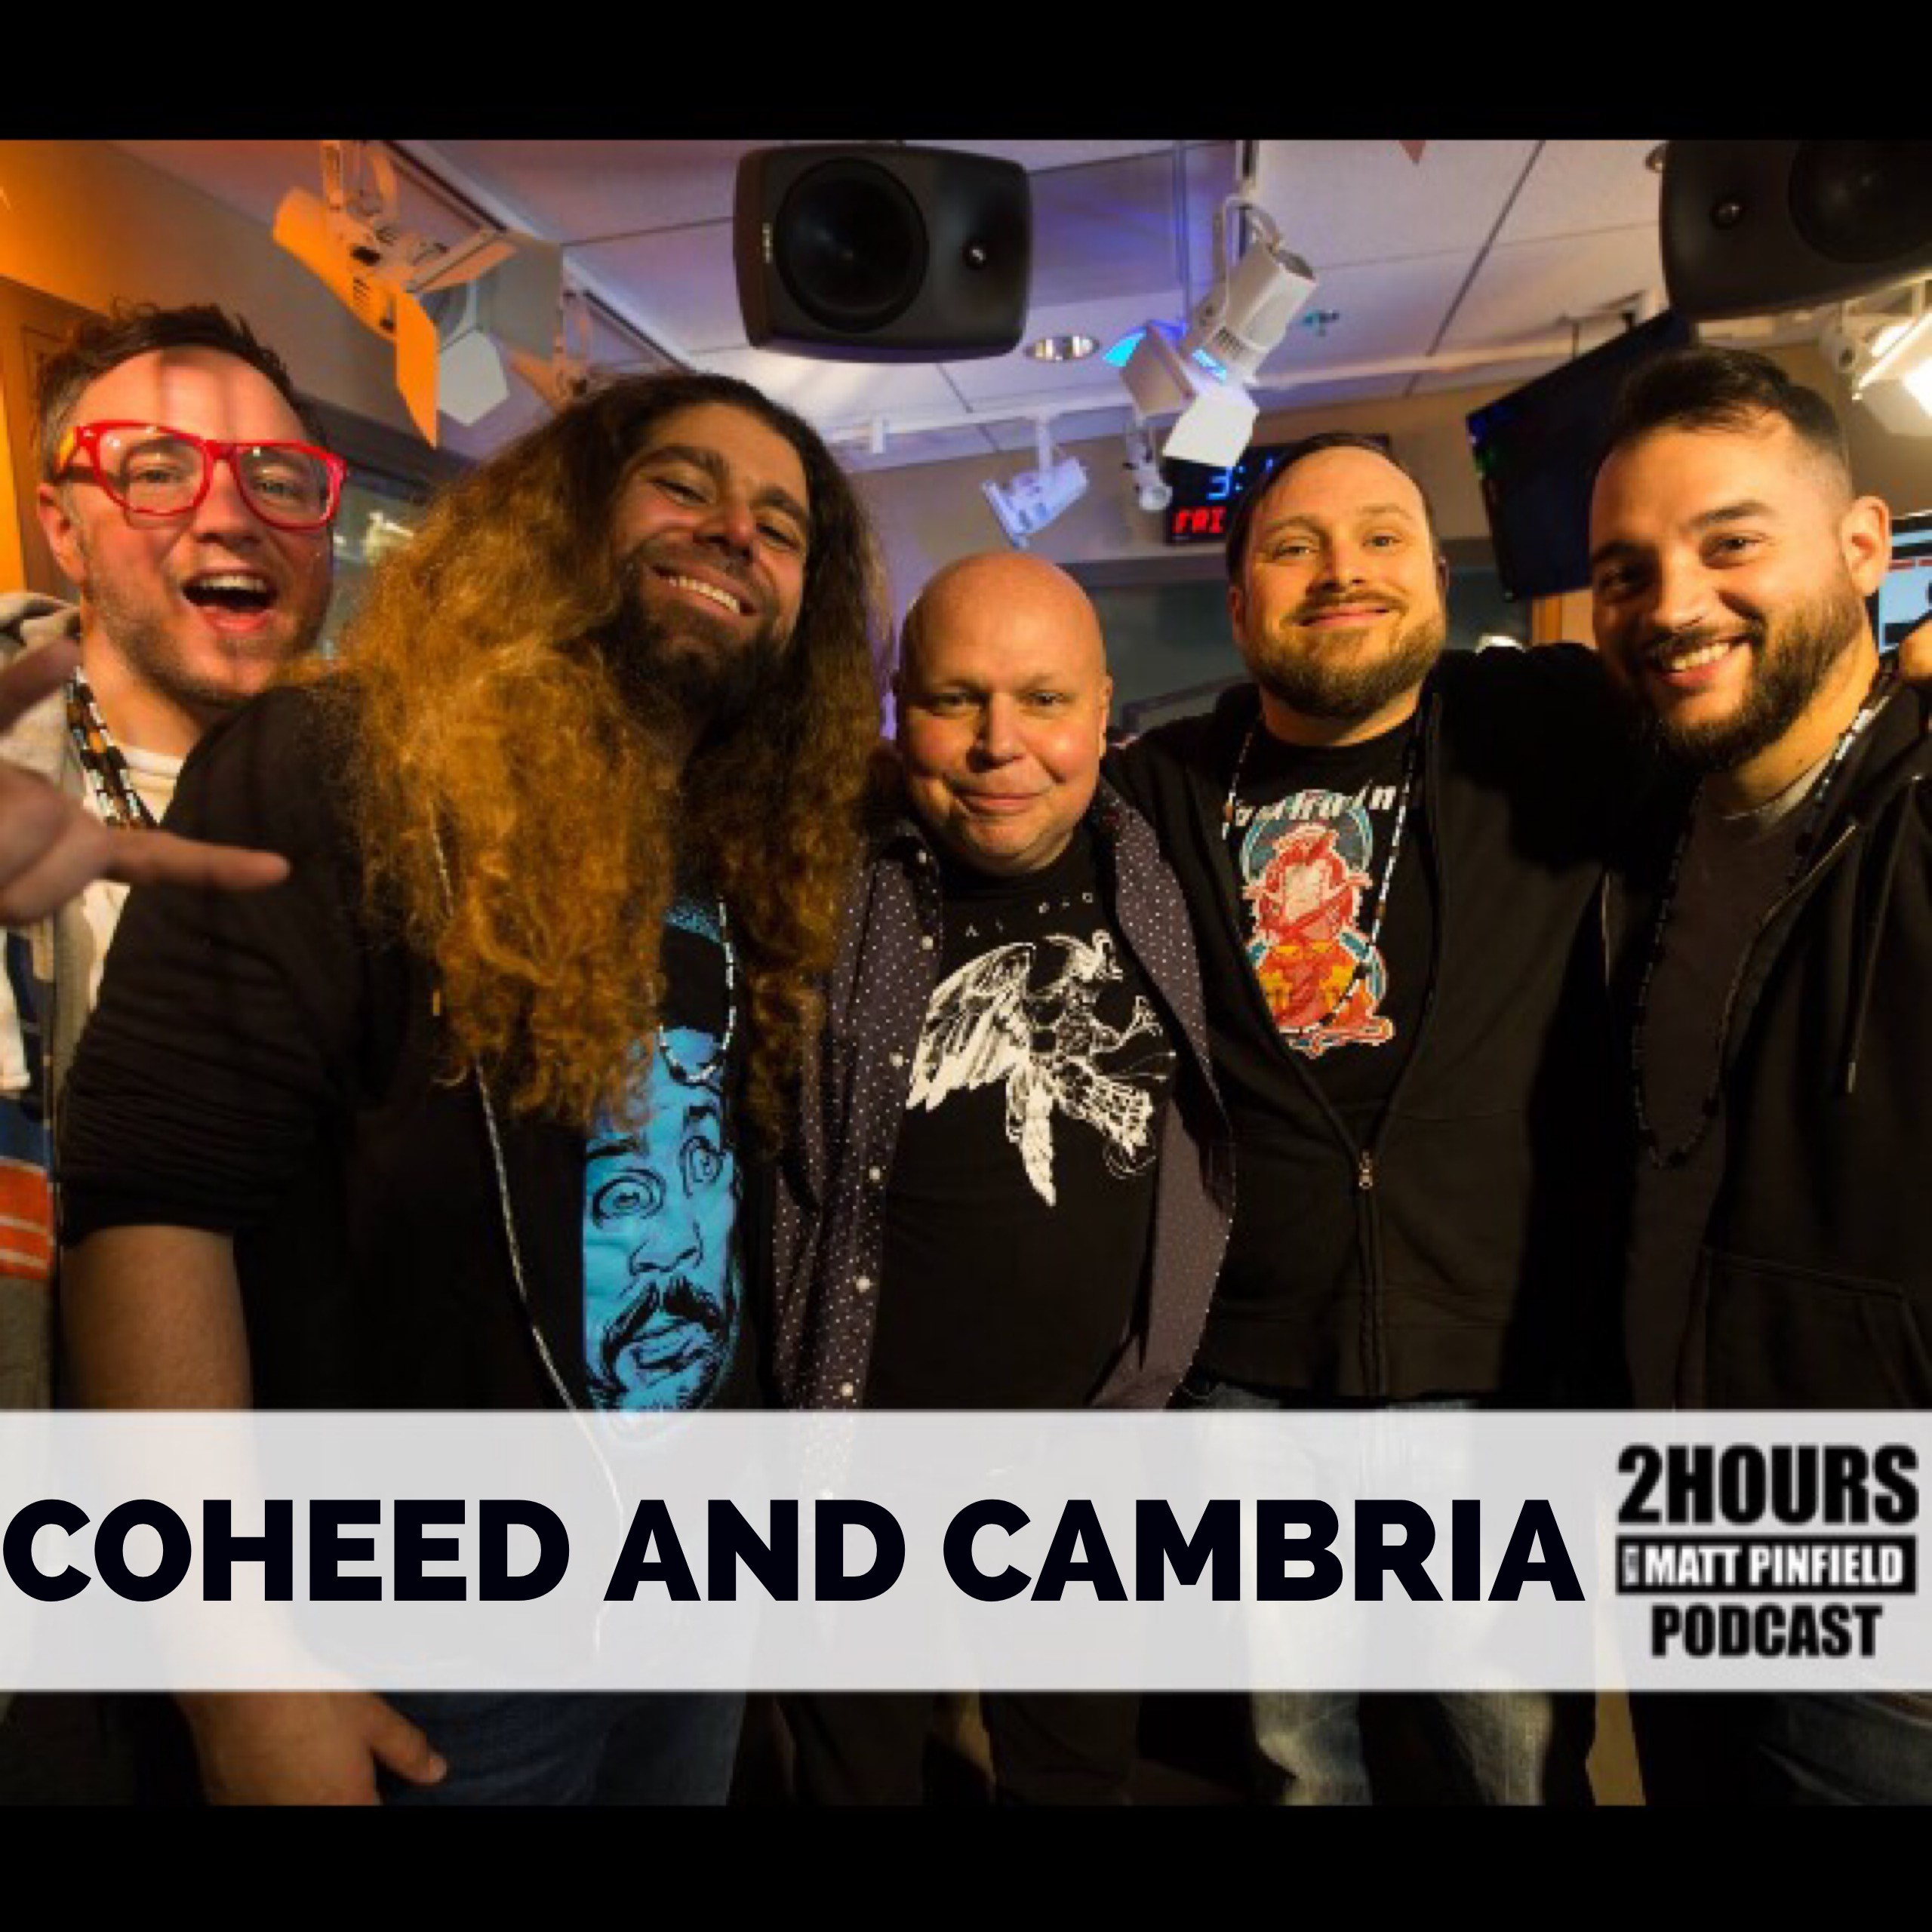 Coheed and Cambria Pod SQUARE